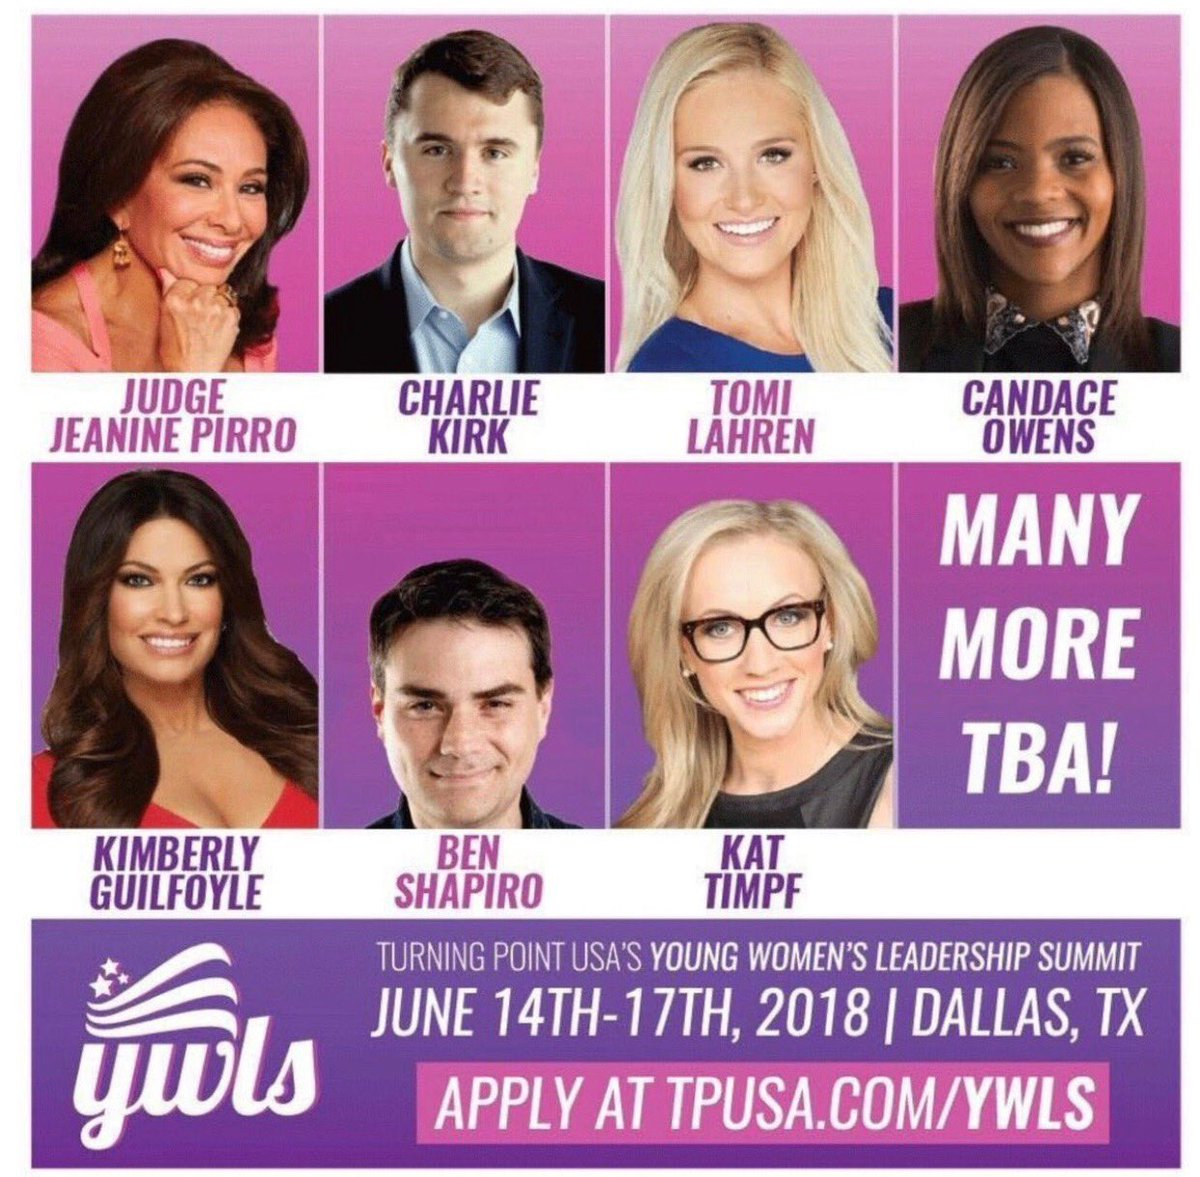 Looking forward hope you will join us at the Young Women's leadership summit! @charliekirk11 @TomiLahren @JudgeJeanine @benshapiro @RedPillBlack @KatTimpf 🇺🇸